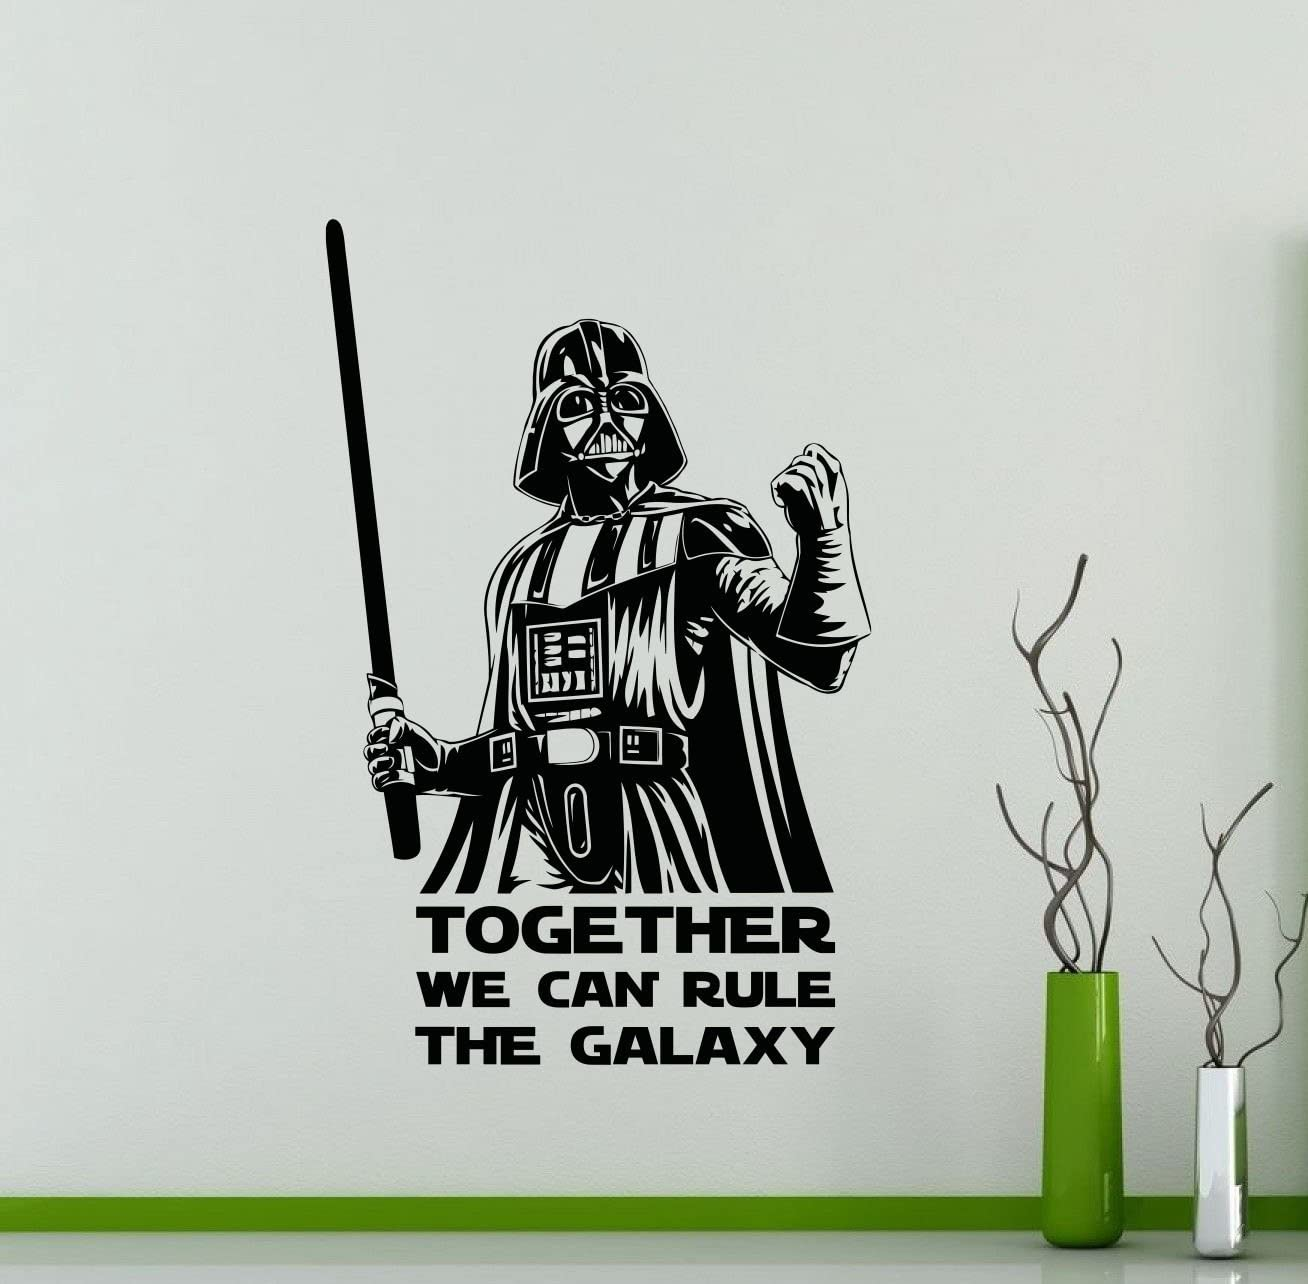 Star Wars Wall Decals Darth Vader Together We Can Rule The Galaxy Quote Poster Vinyl Sticker Home Teen Kids Room Bedroom Living Room Nursery Ideas Art Decor Stencil Lettering Vinyl Mural (24sw)